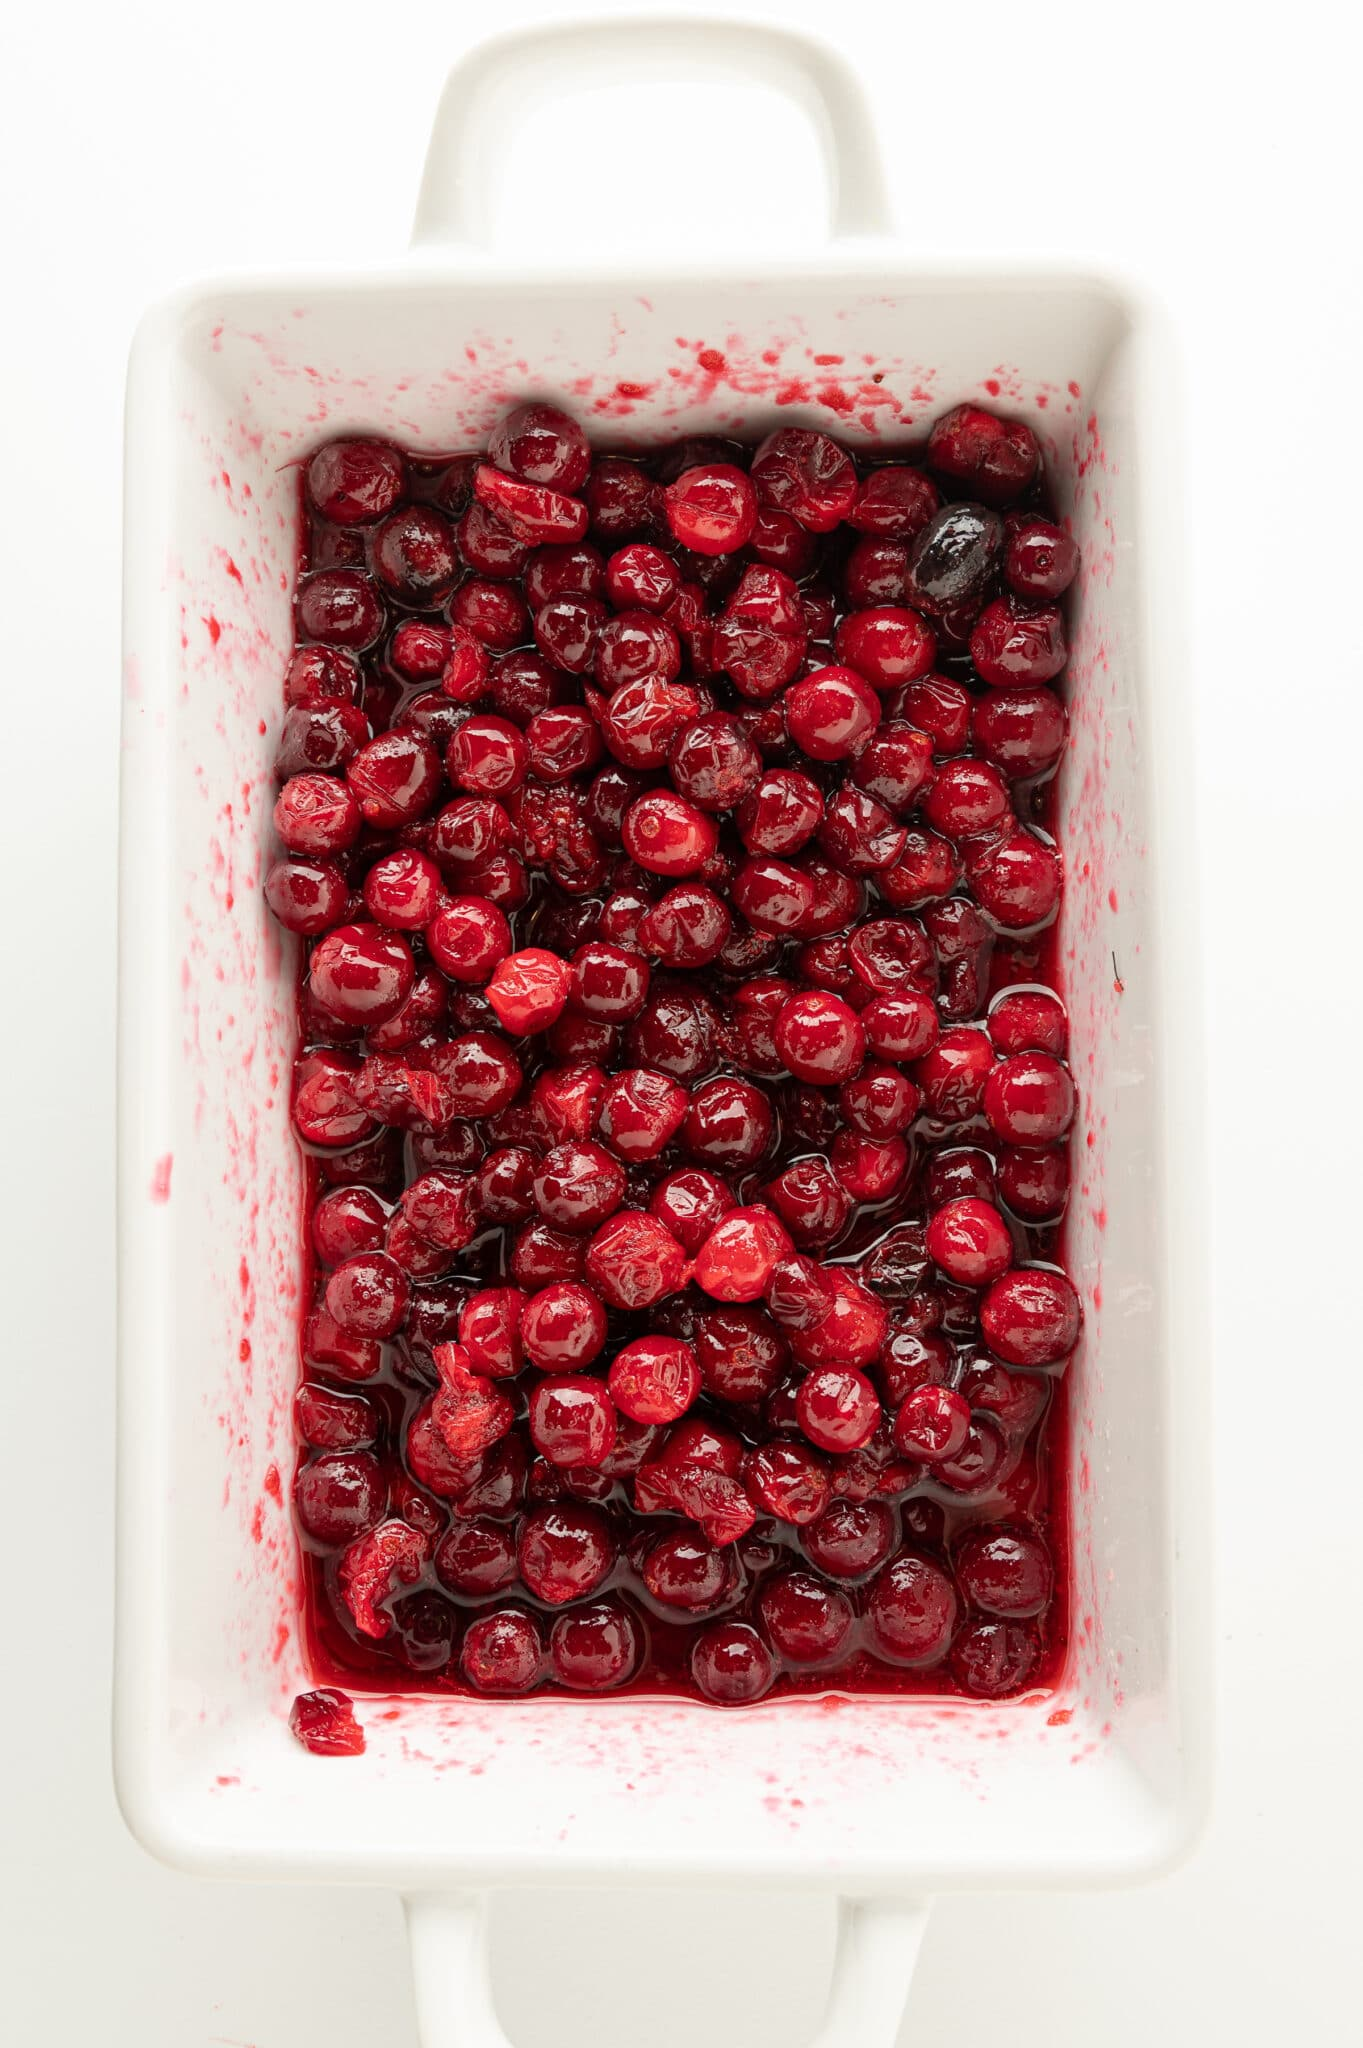 A white dish filled with ruby red berries glossy coated with a thick syrup.